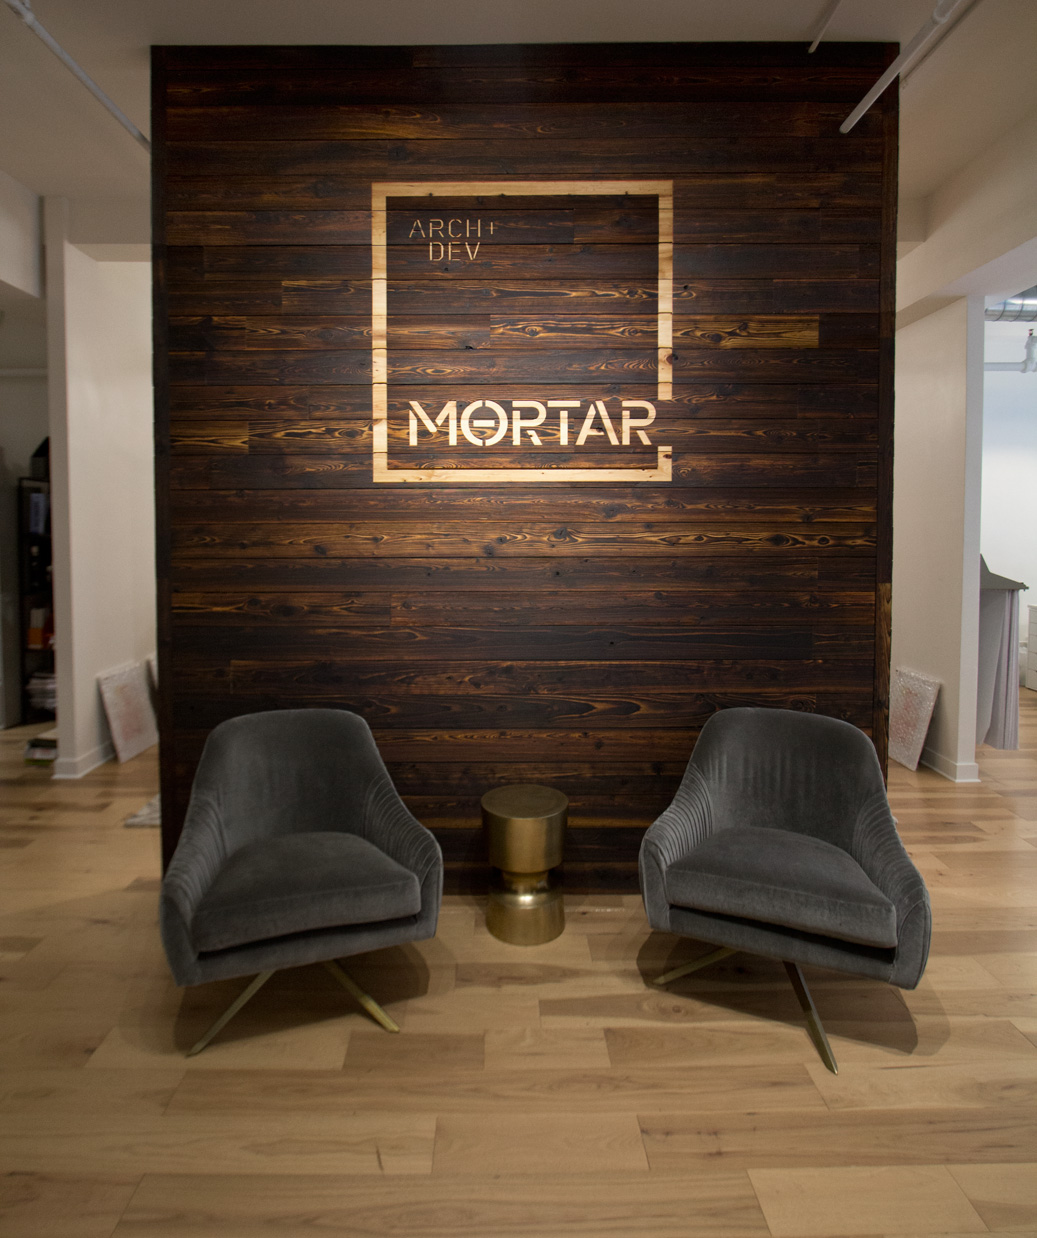 Wood Accent Wall Patterns: Mortar Arch + Dev Office :: TORA Shou Sugi Ban